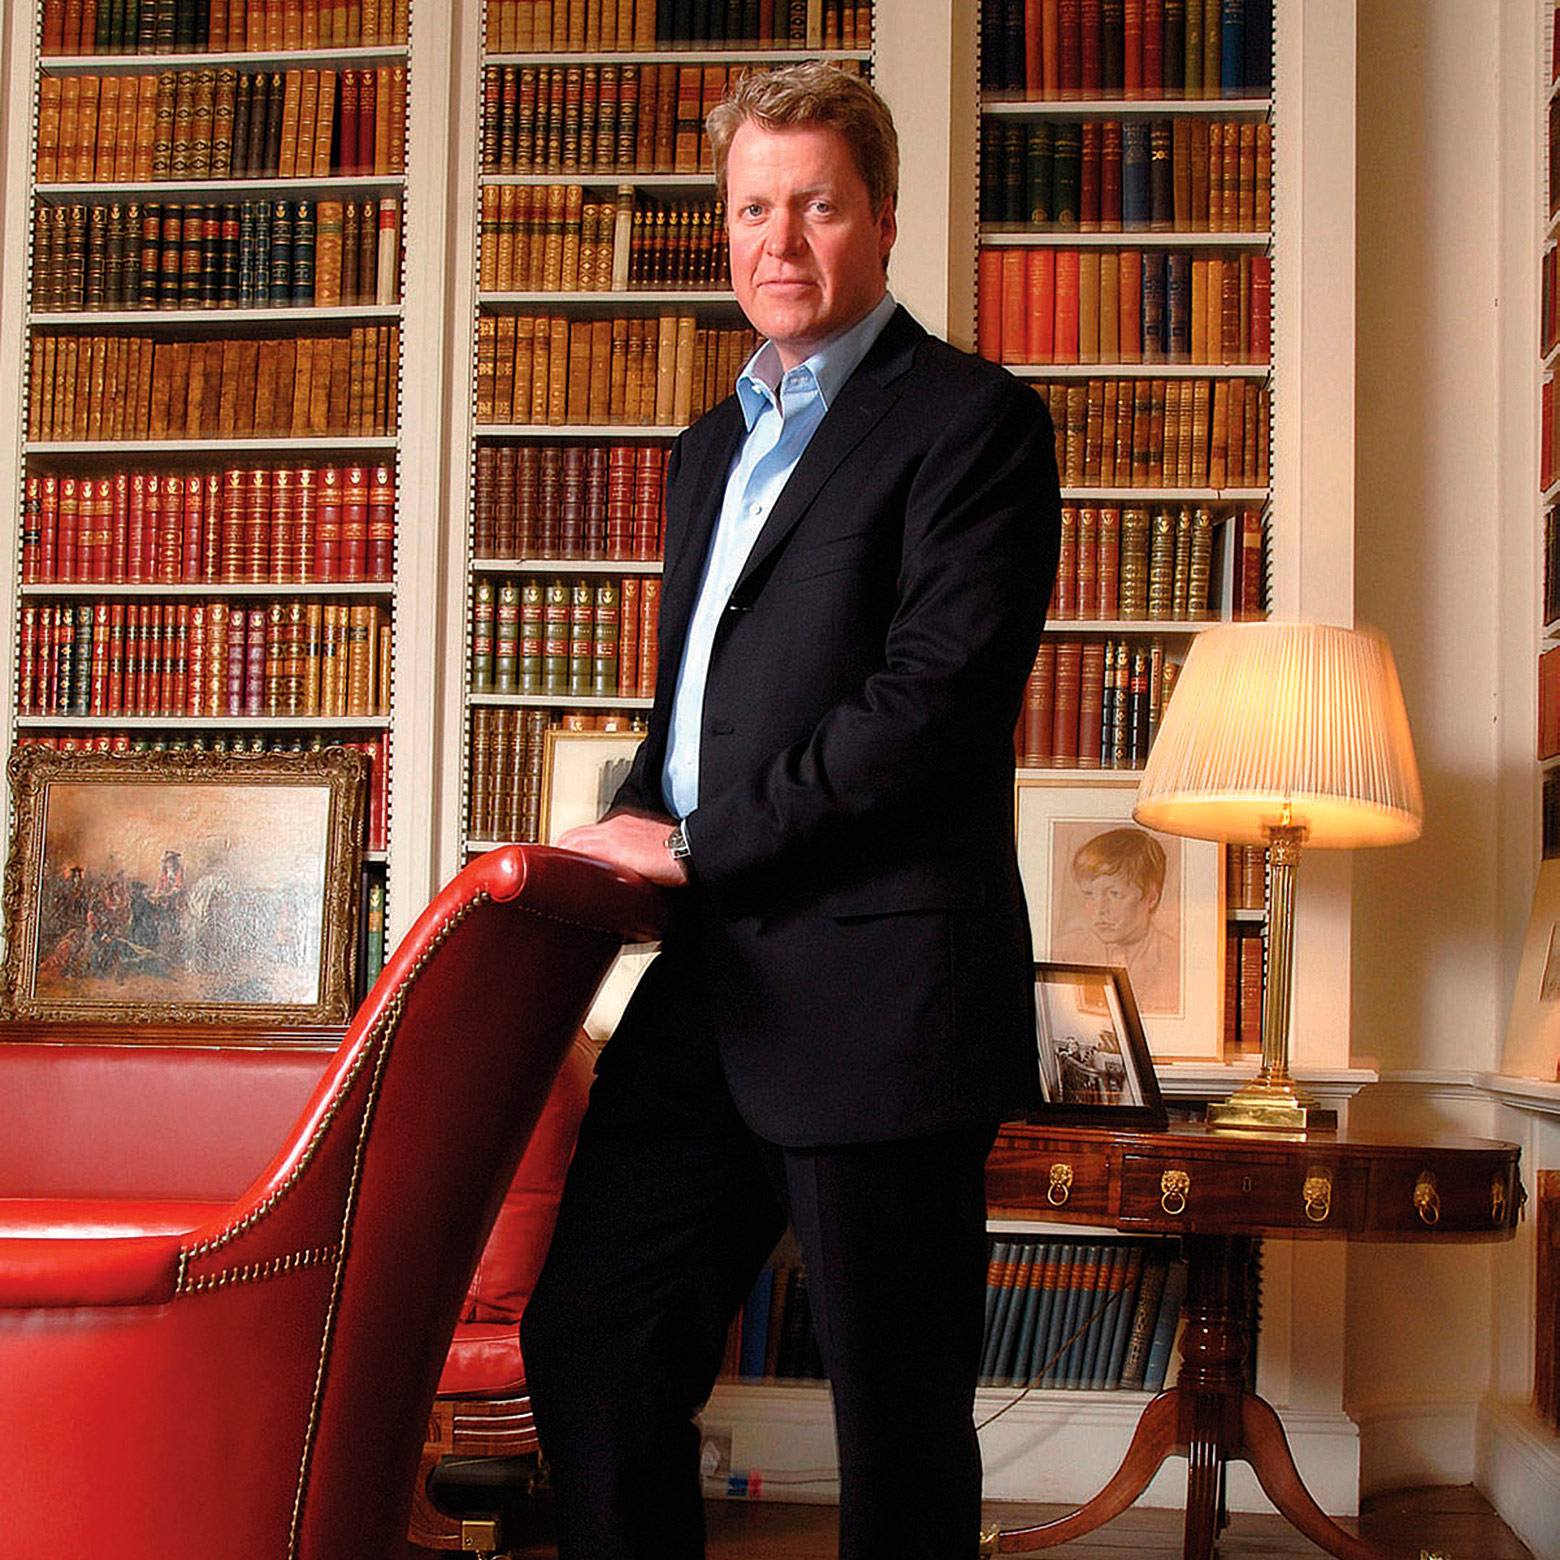 Charles, 9th Earl Spencer